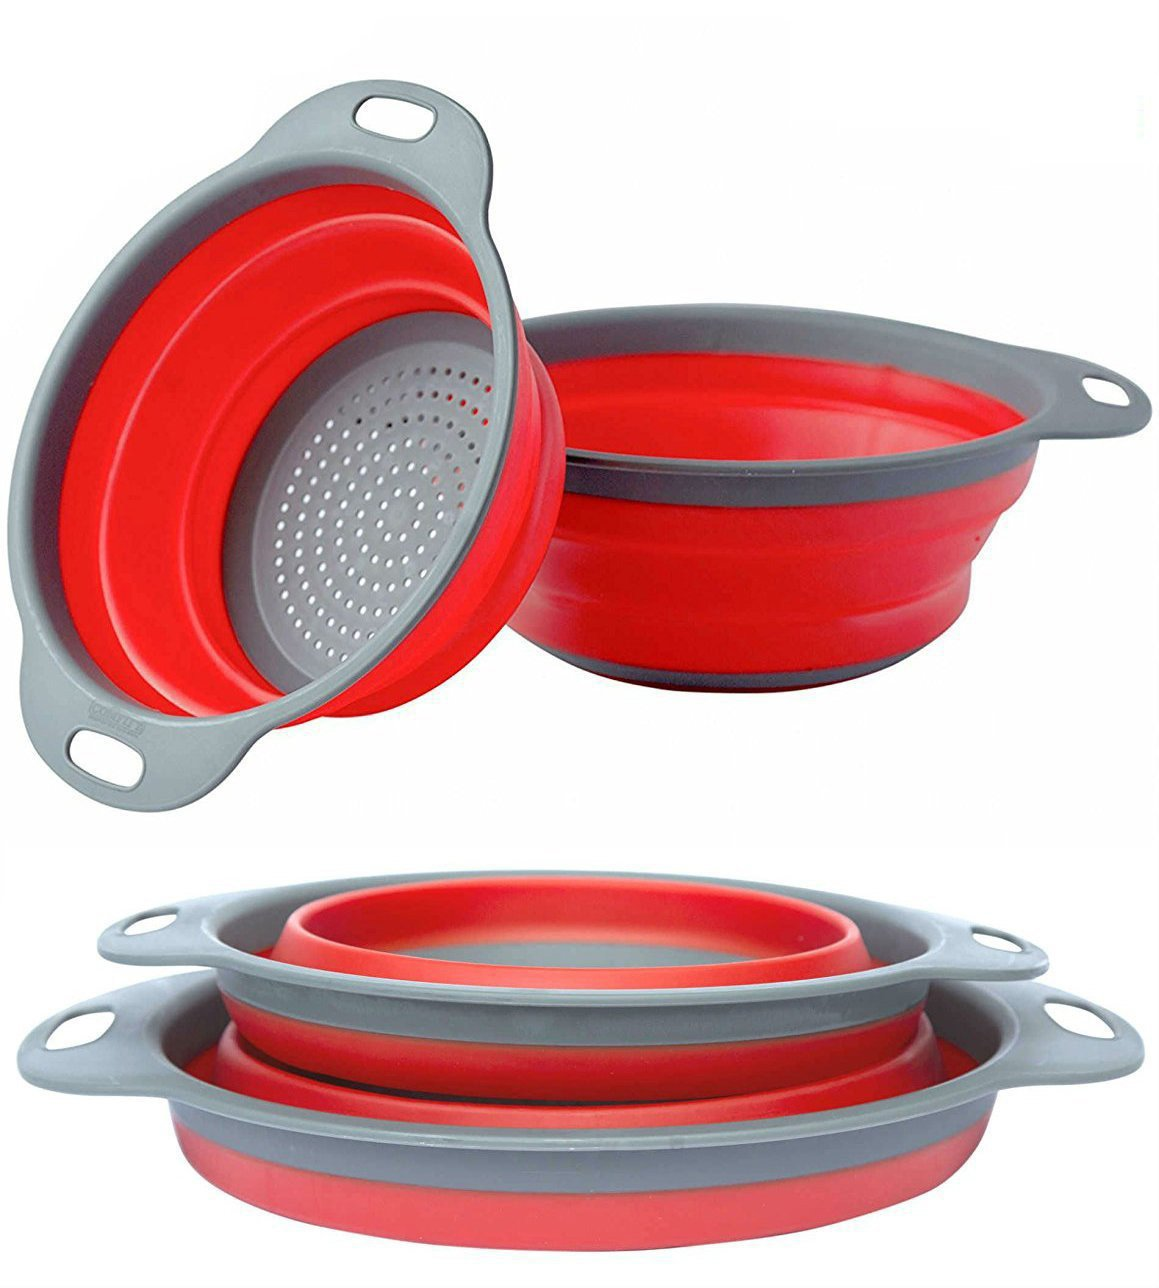 Collapsible Colanders Set, Silicone Kitchen Sink Strainers, Hand-hold Strainers Basket, 2 Pack (Red)